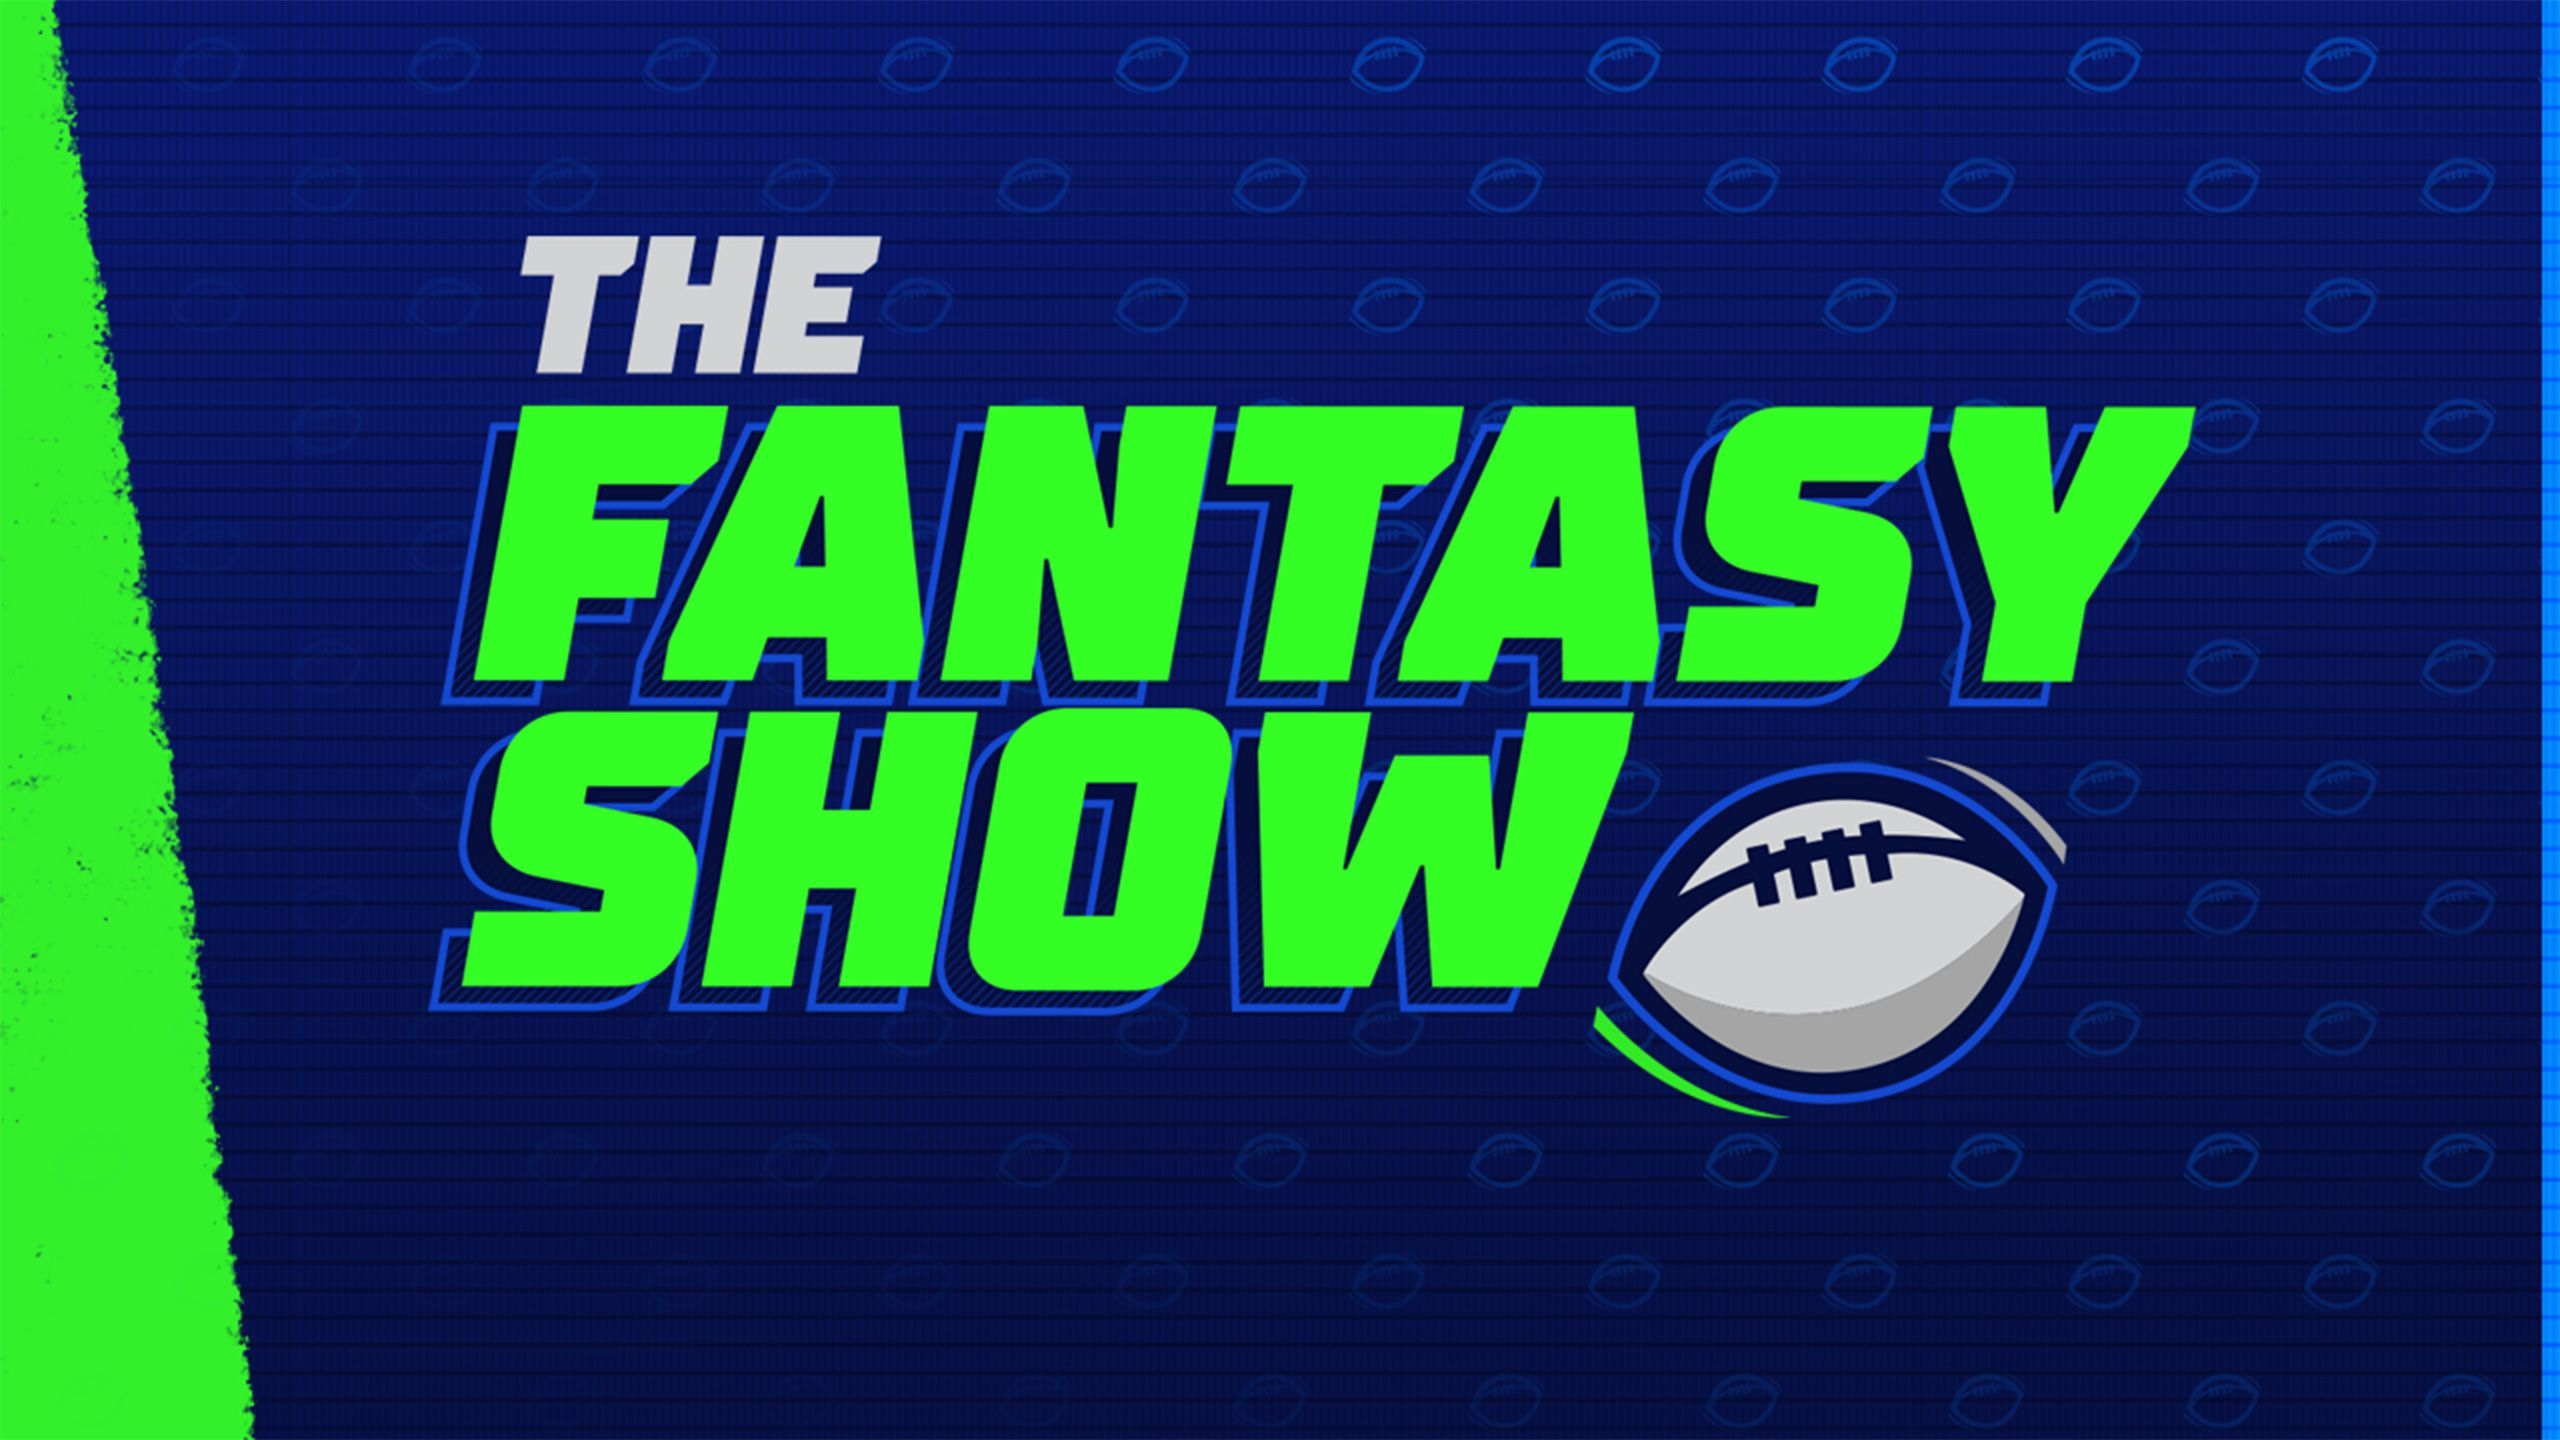 Tue, 10/17 - The Fantasy Show presented by E*Trade